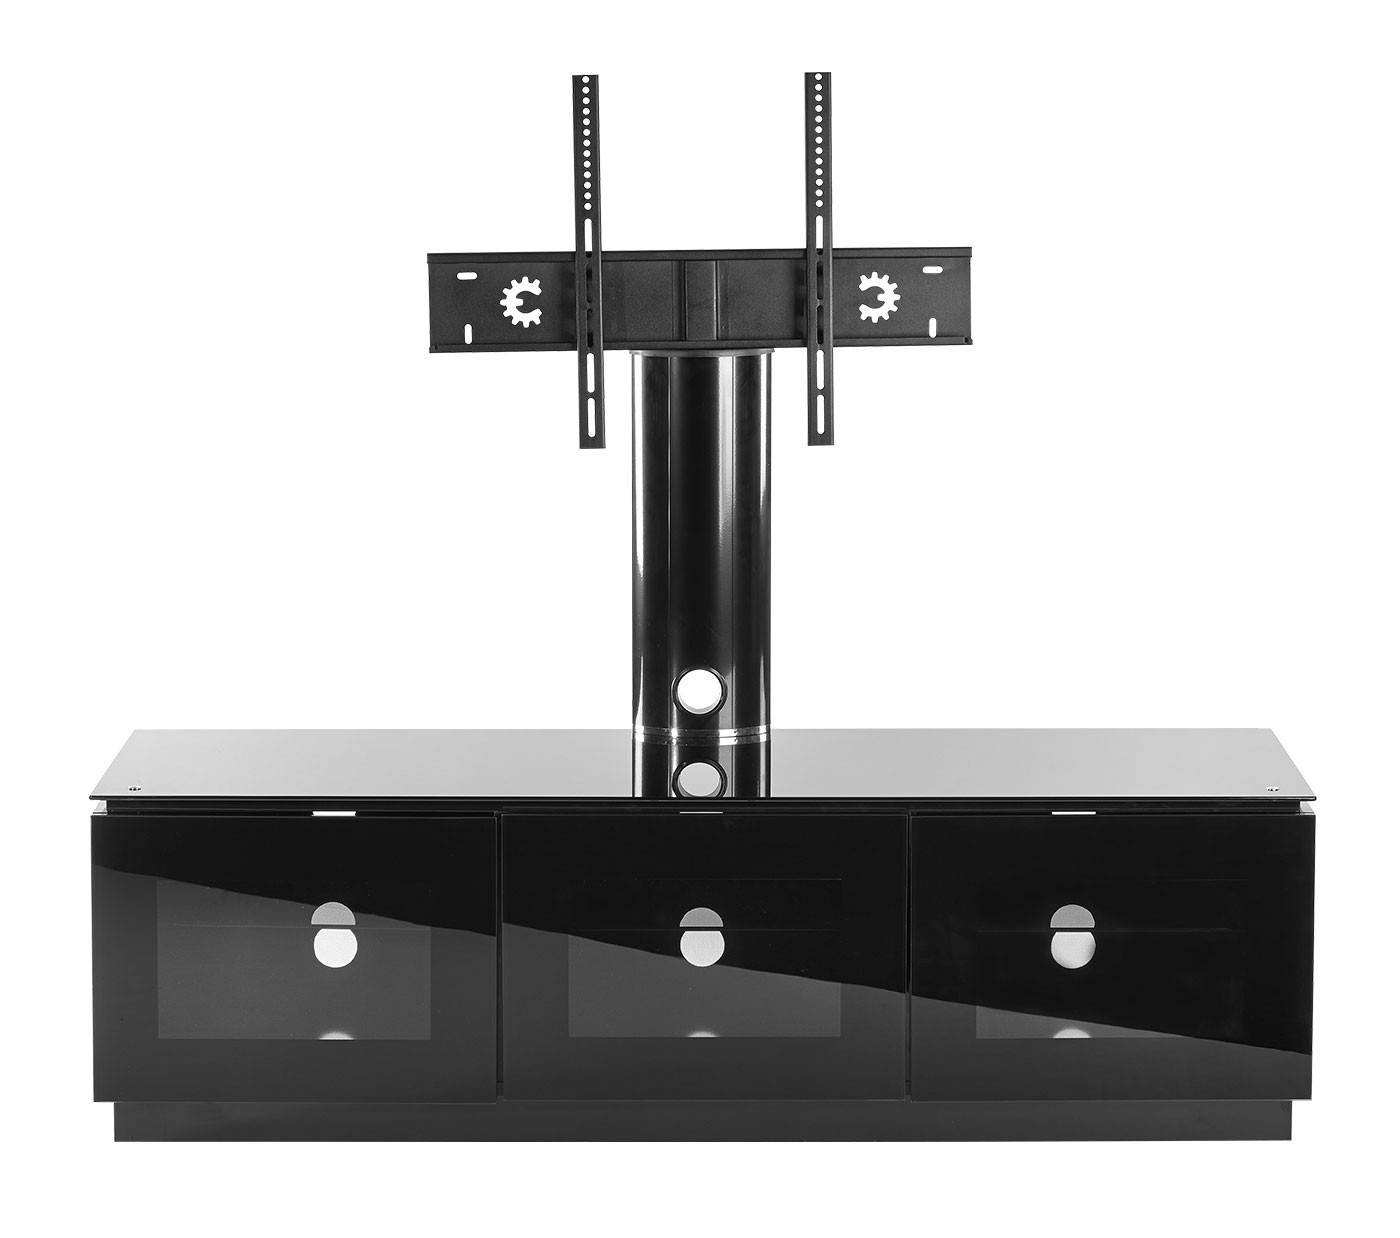 Black Tv Cabinet With Mount For Up To 65 Inch Tv | Mmt D1500 Xarm For Tv Cabinets (View 9 of 15)